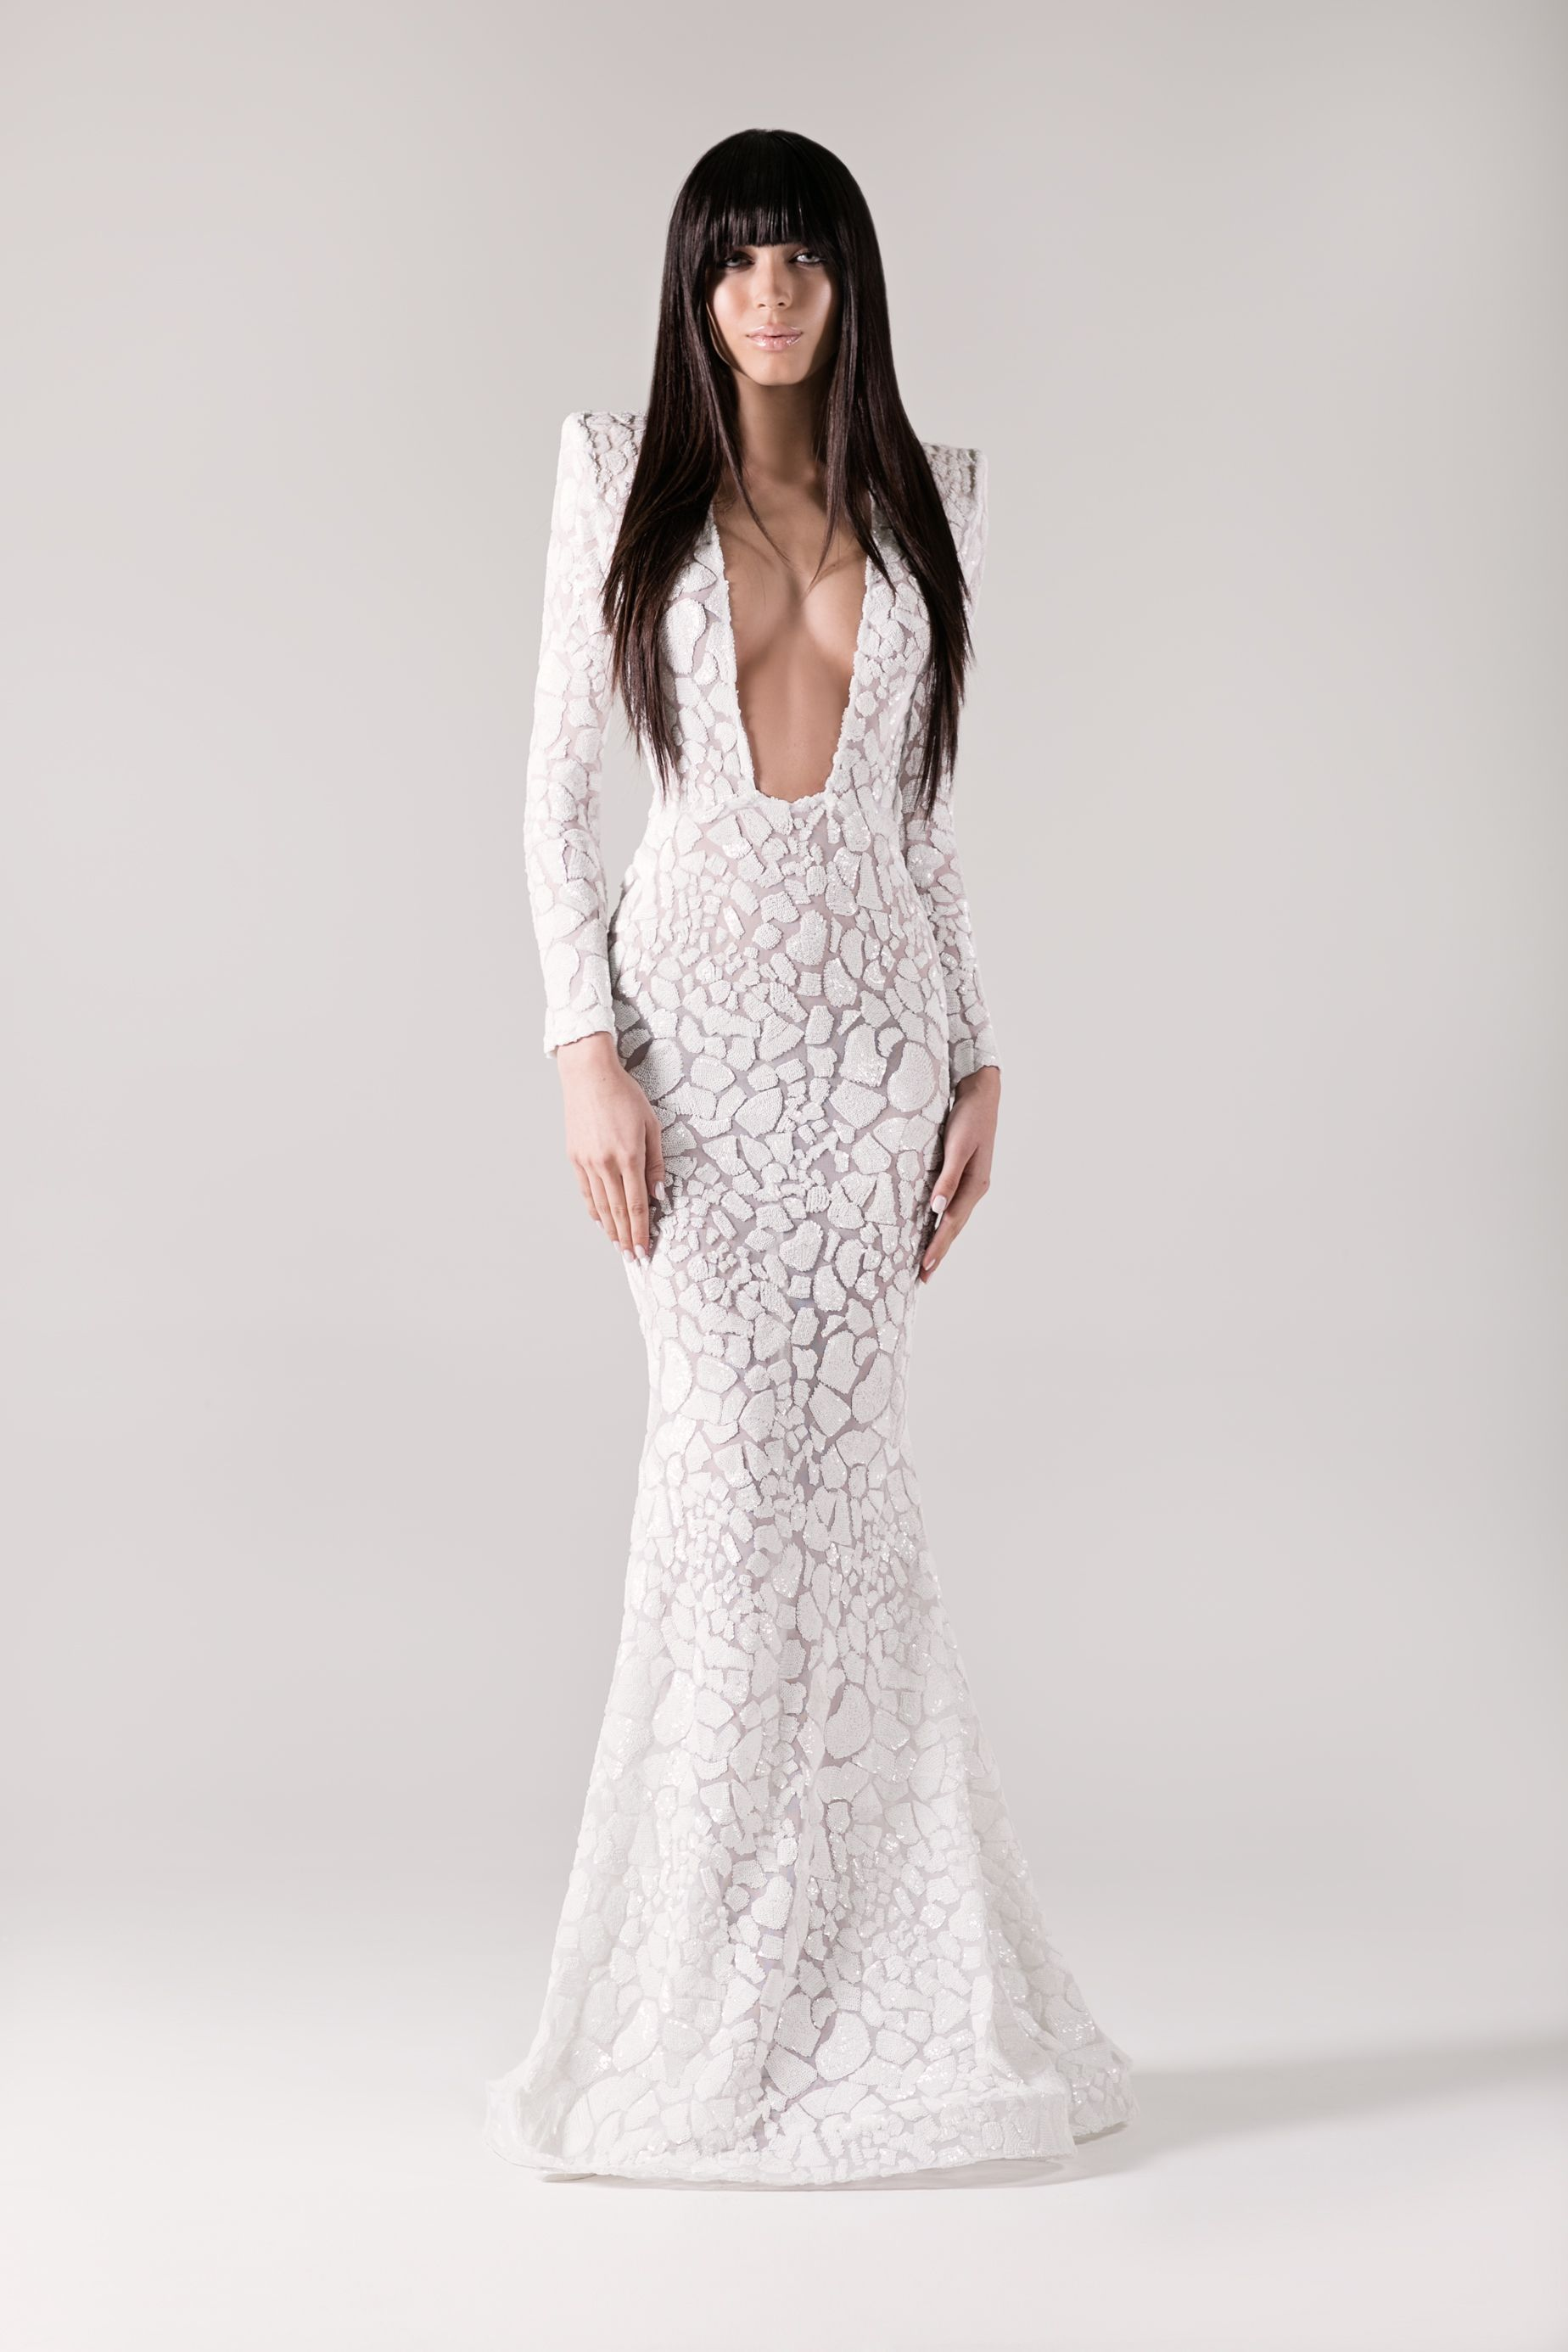 Michaelcostello dresses to die for pinterest michael costello